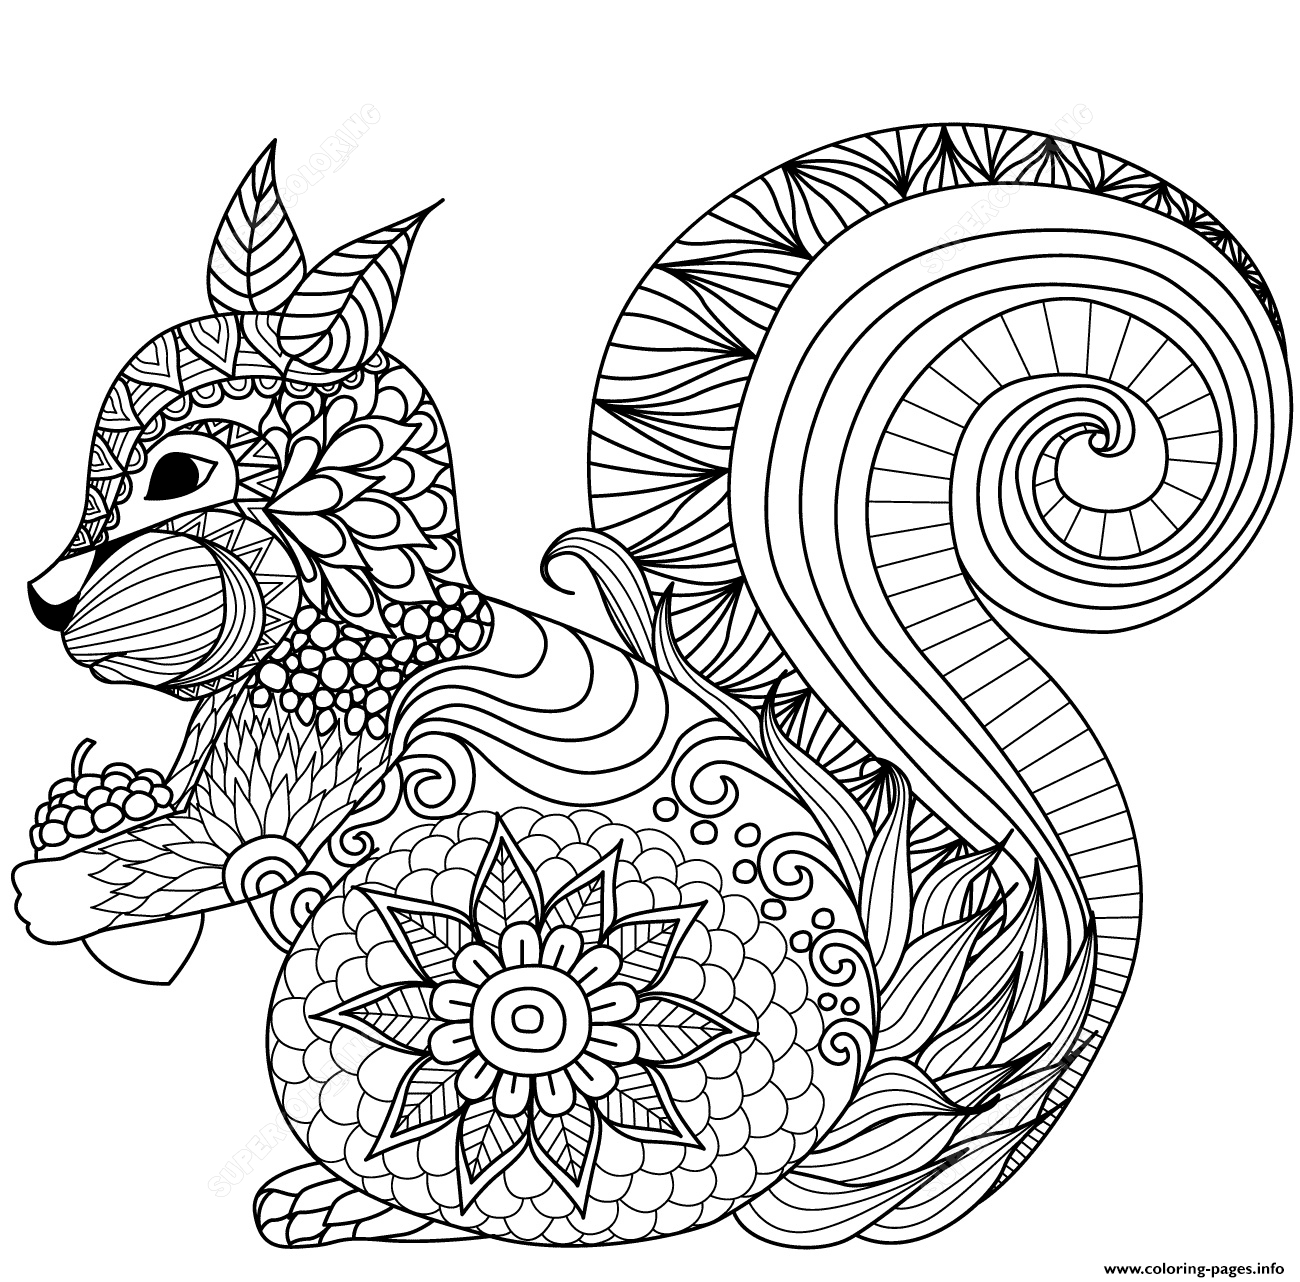 Squirrel Zentangle Adults 1 Coloring